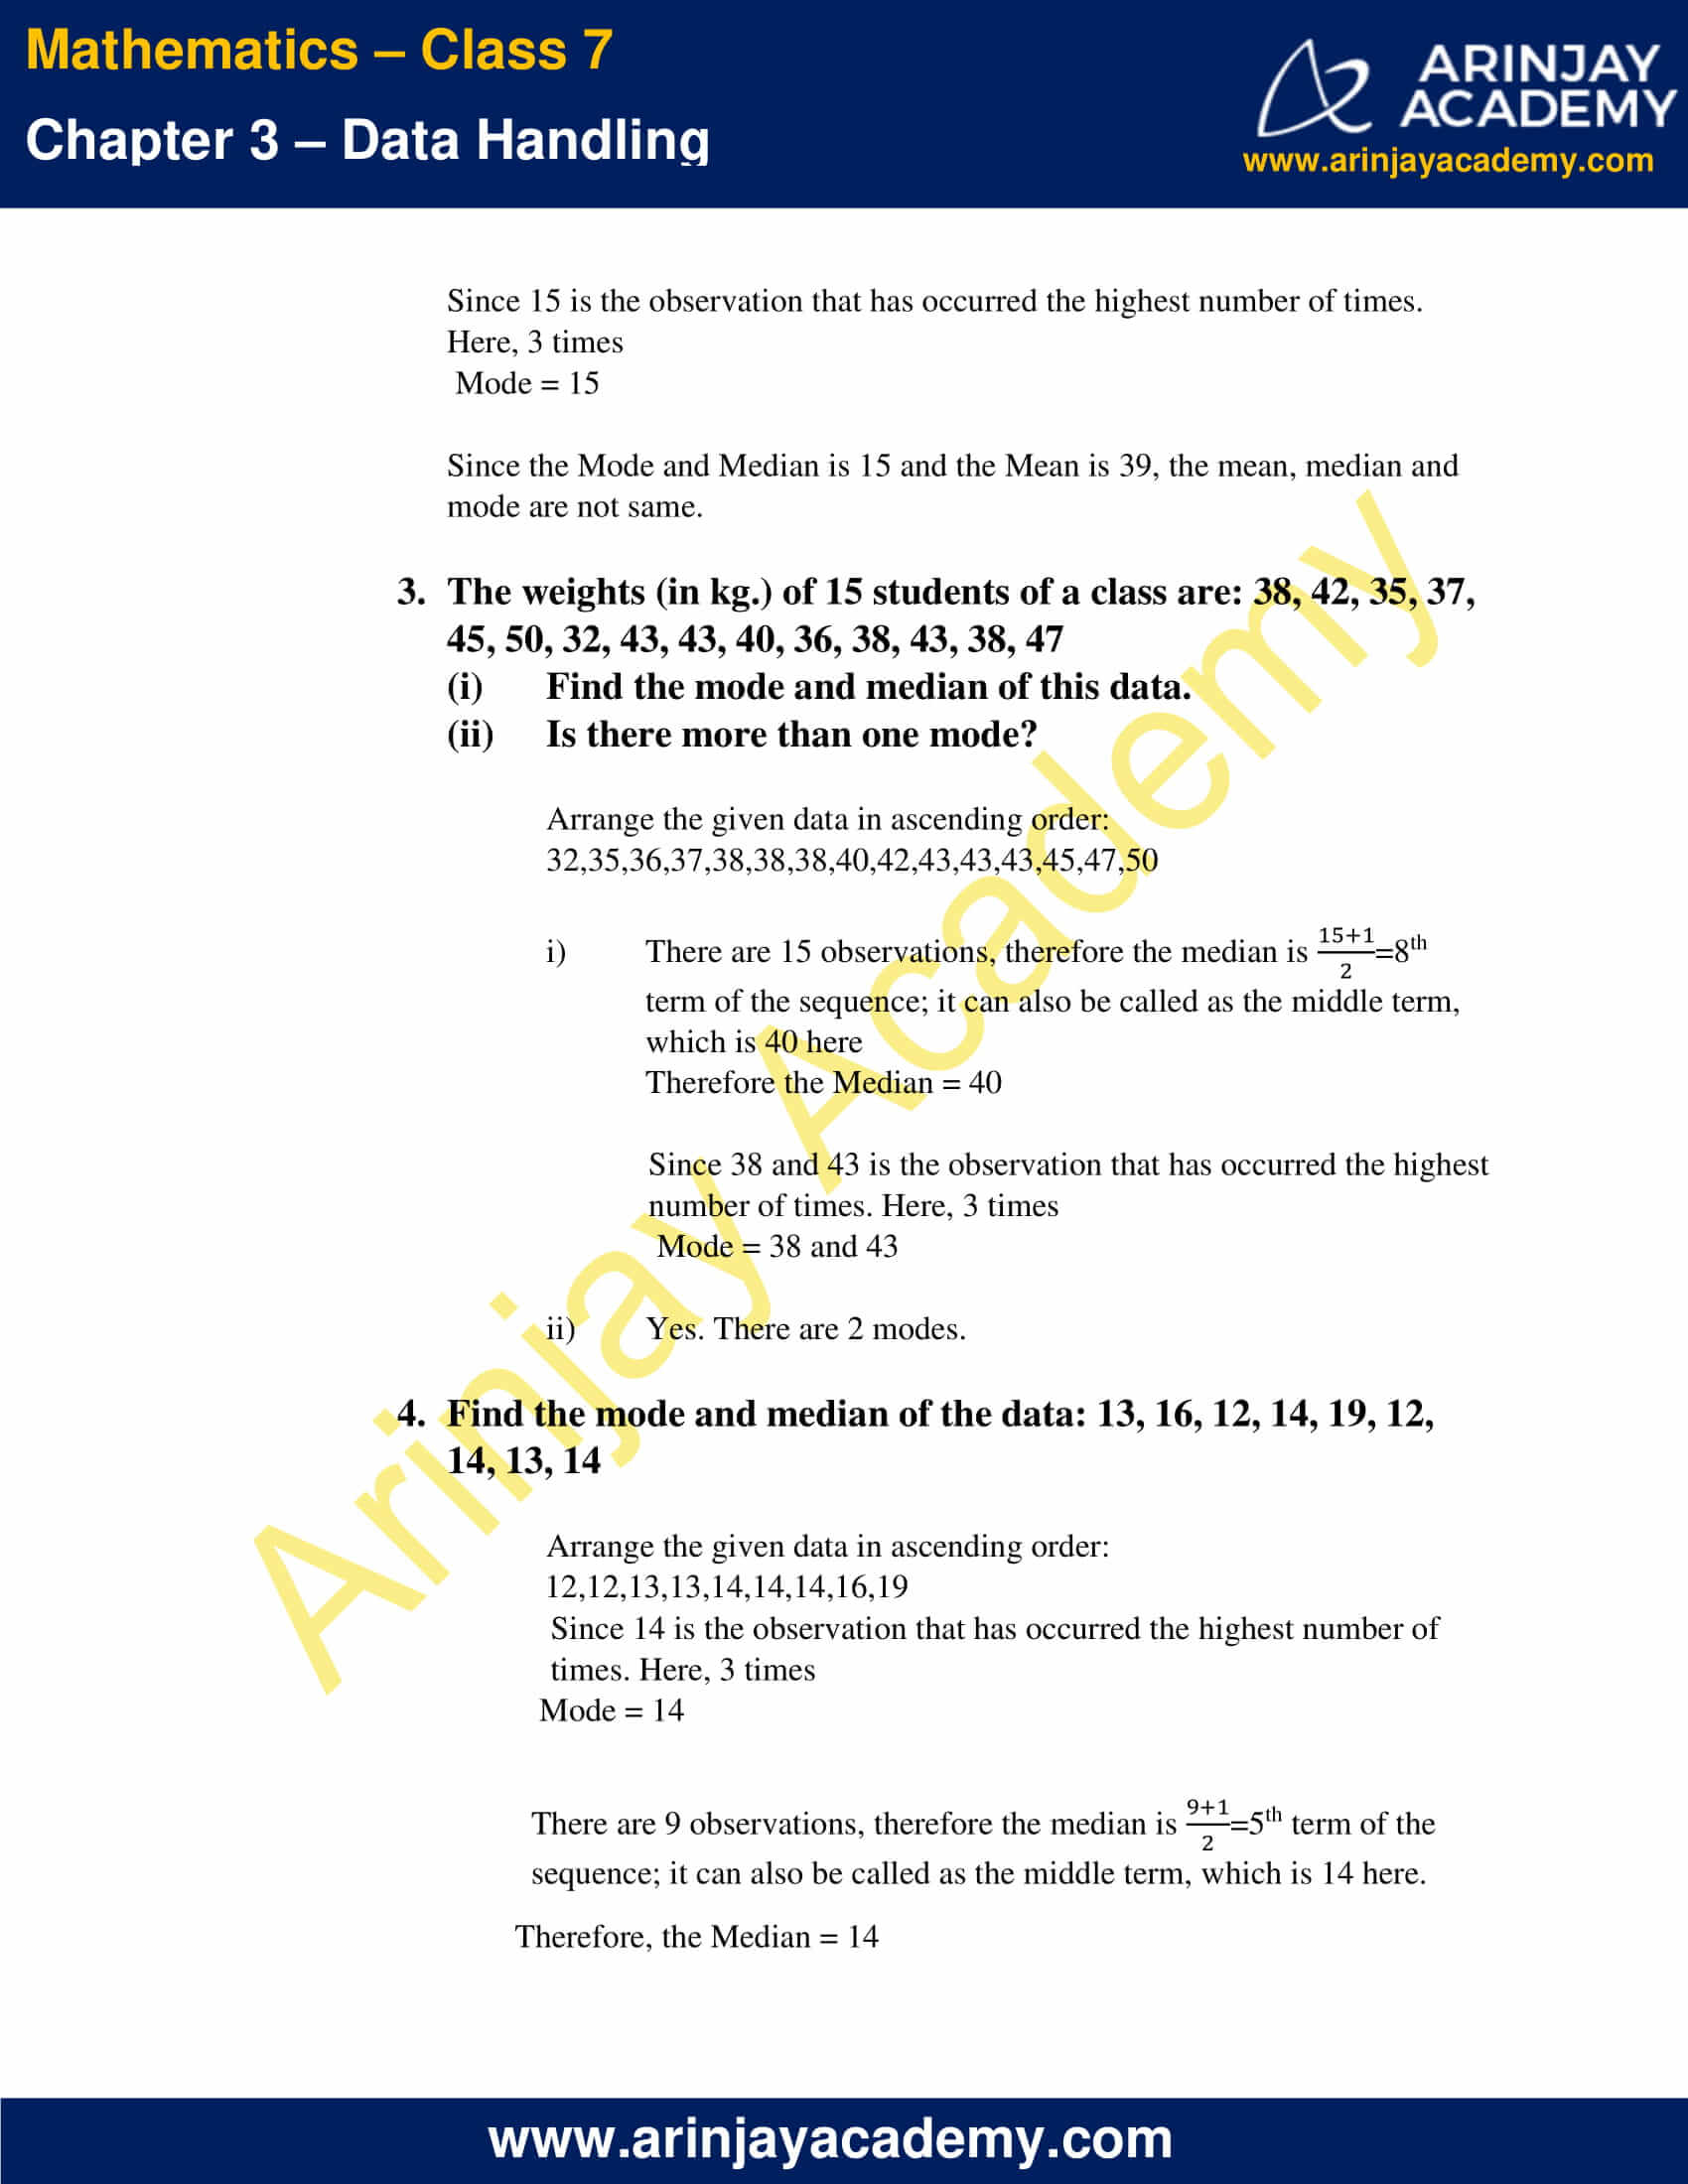 NCERT Solutions for Class 7 Maths Chapter 3 Exercise 3.2 image 2